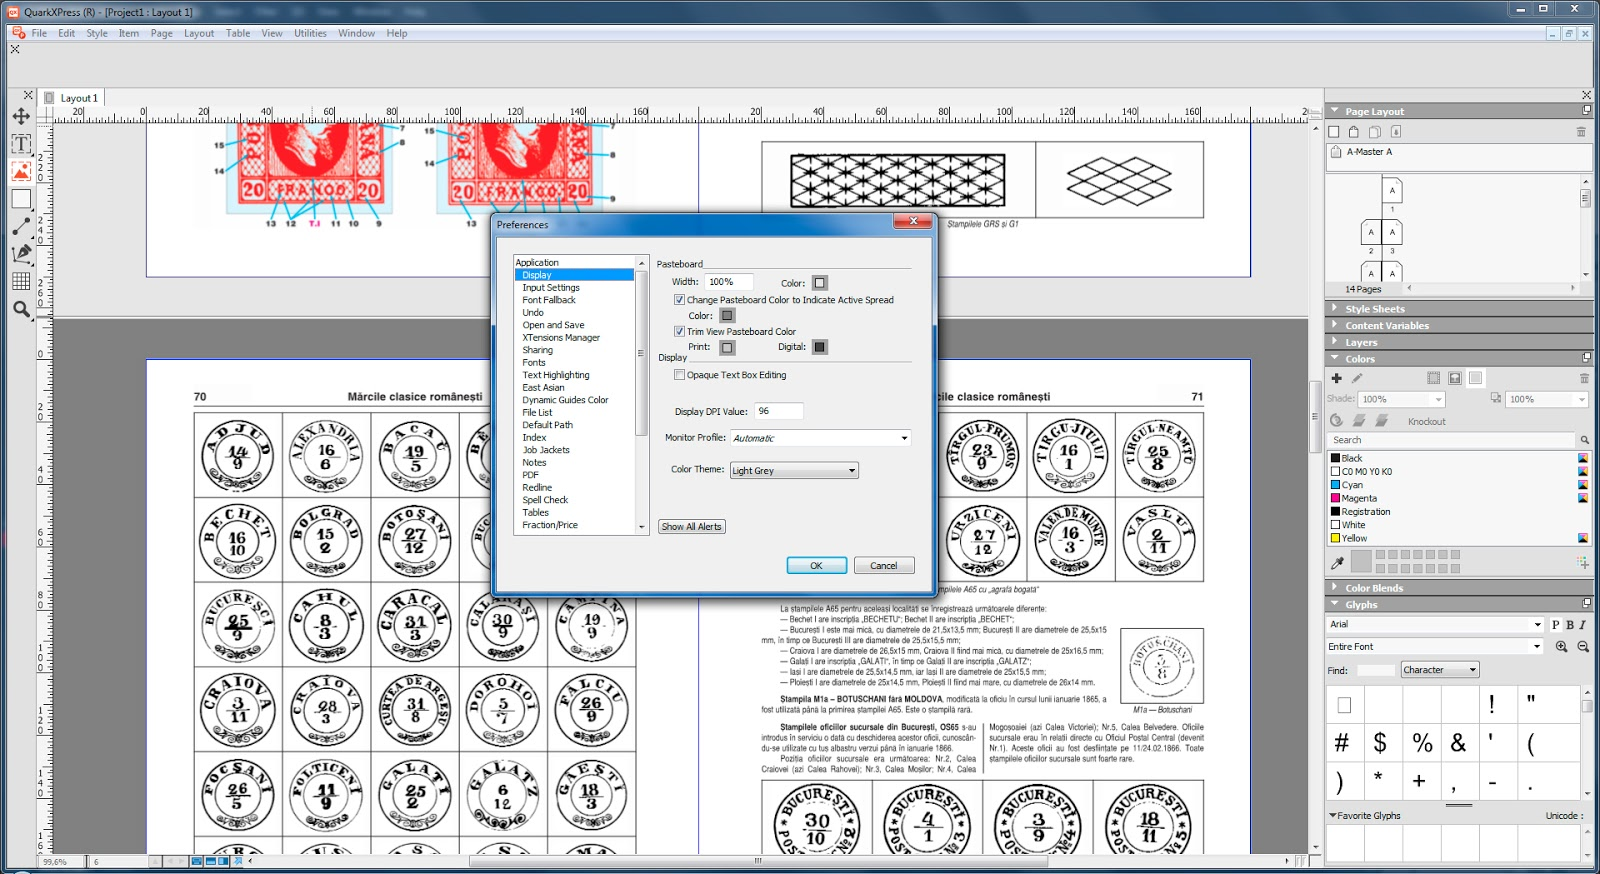 Quarkxpress 7.0keygen multilanguage iso